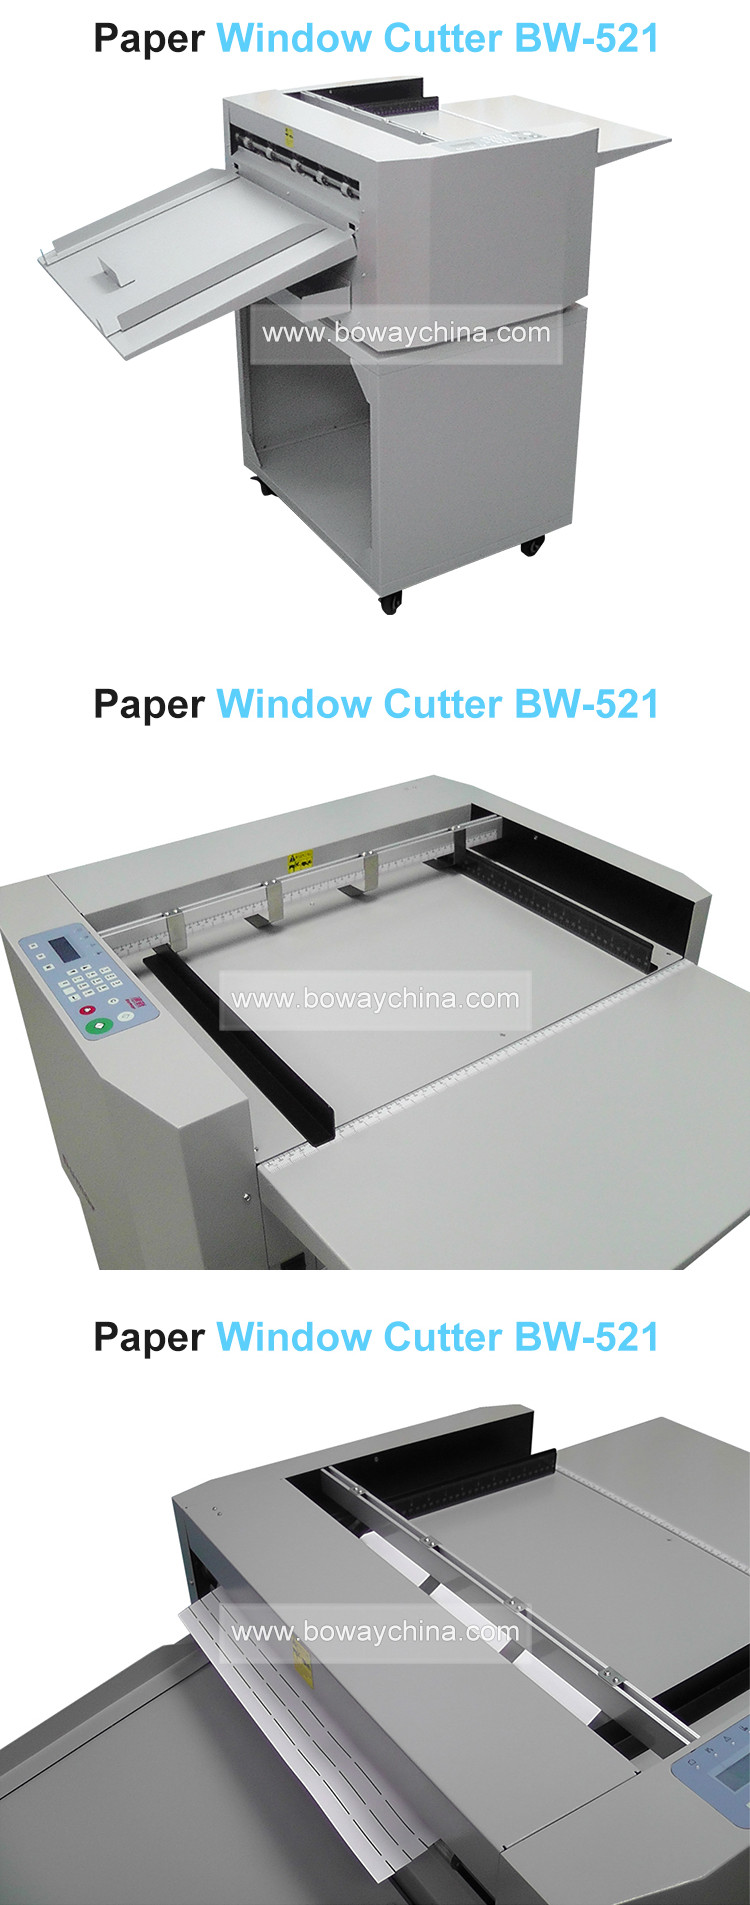 BW-521 window cutter appearance.jpg